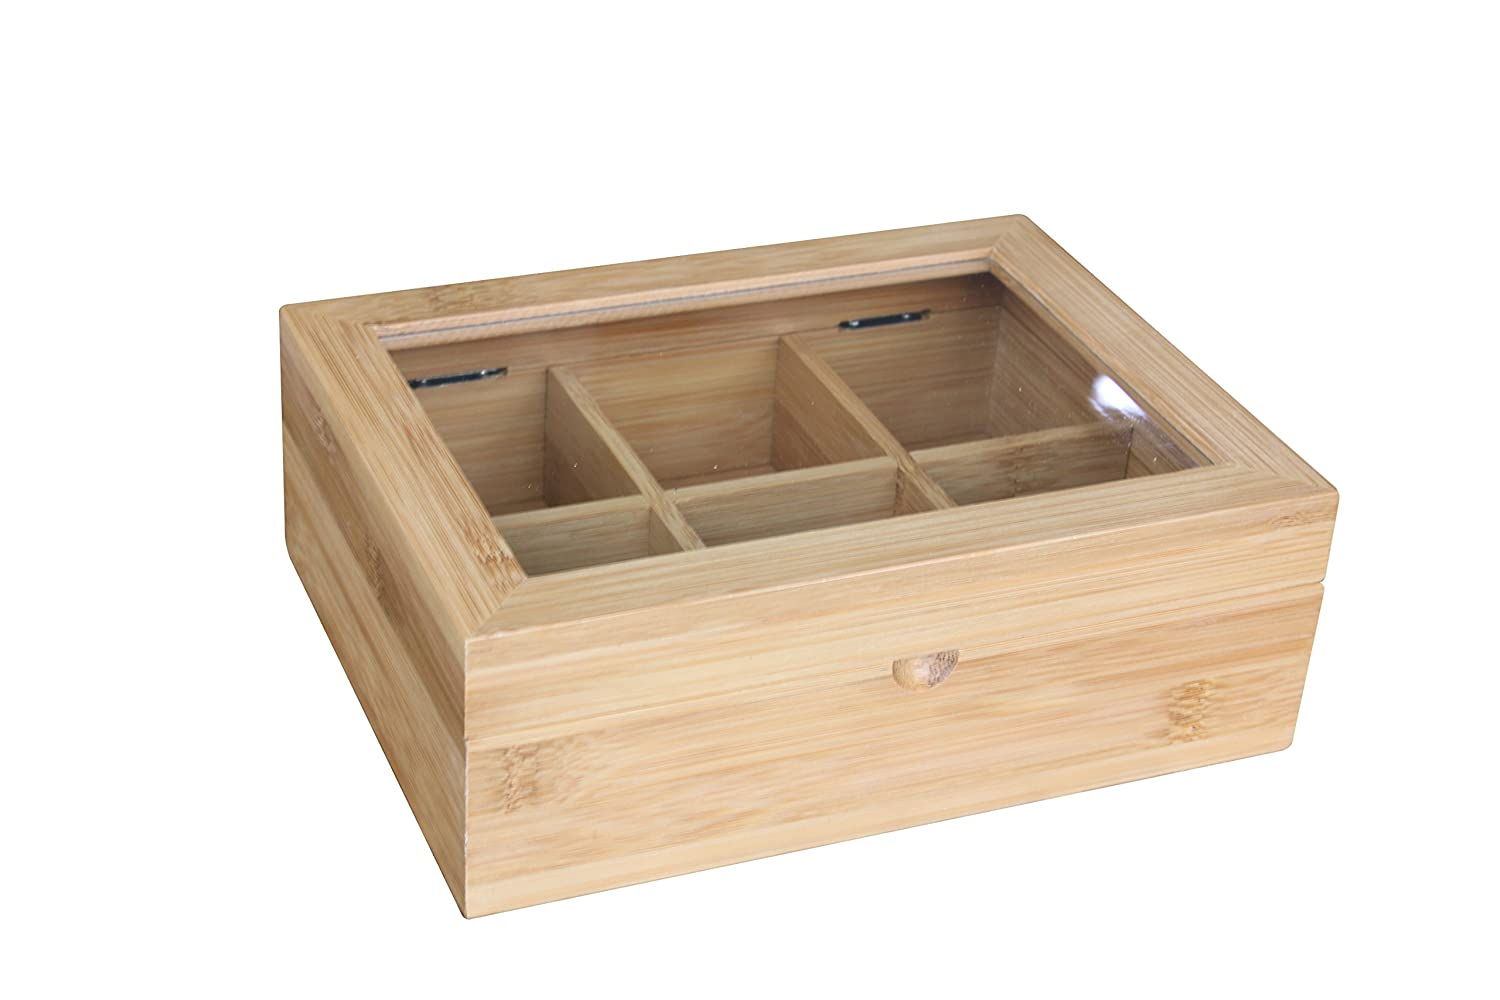 Home Basics Bamboo Tea Box Storage Display Chest with 6 Compartments, Natural HDS Trading Corp TB47232